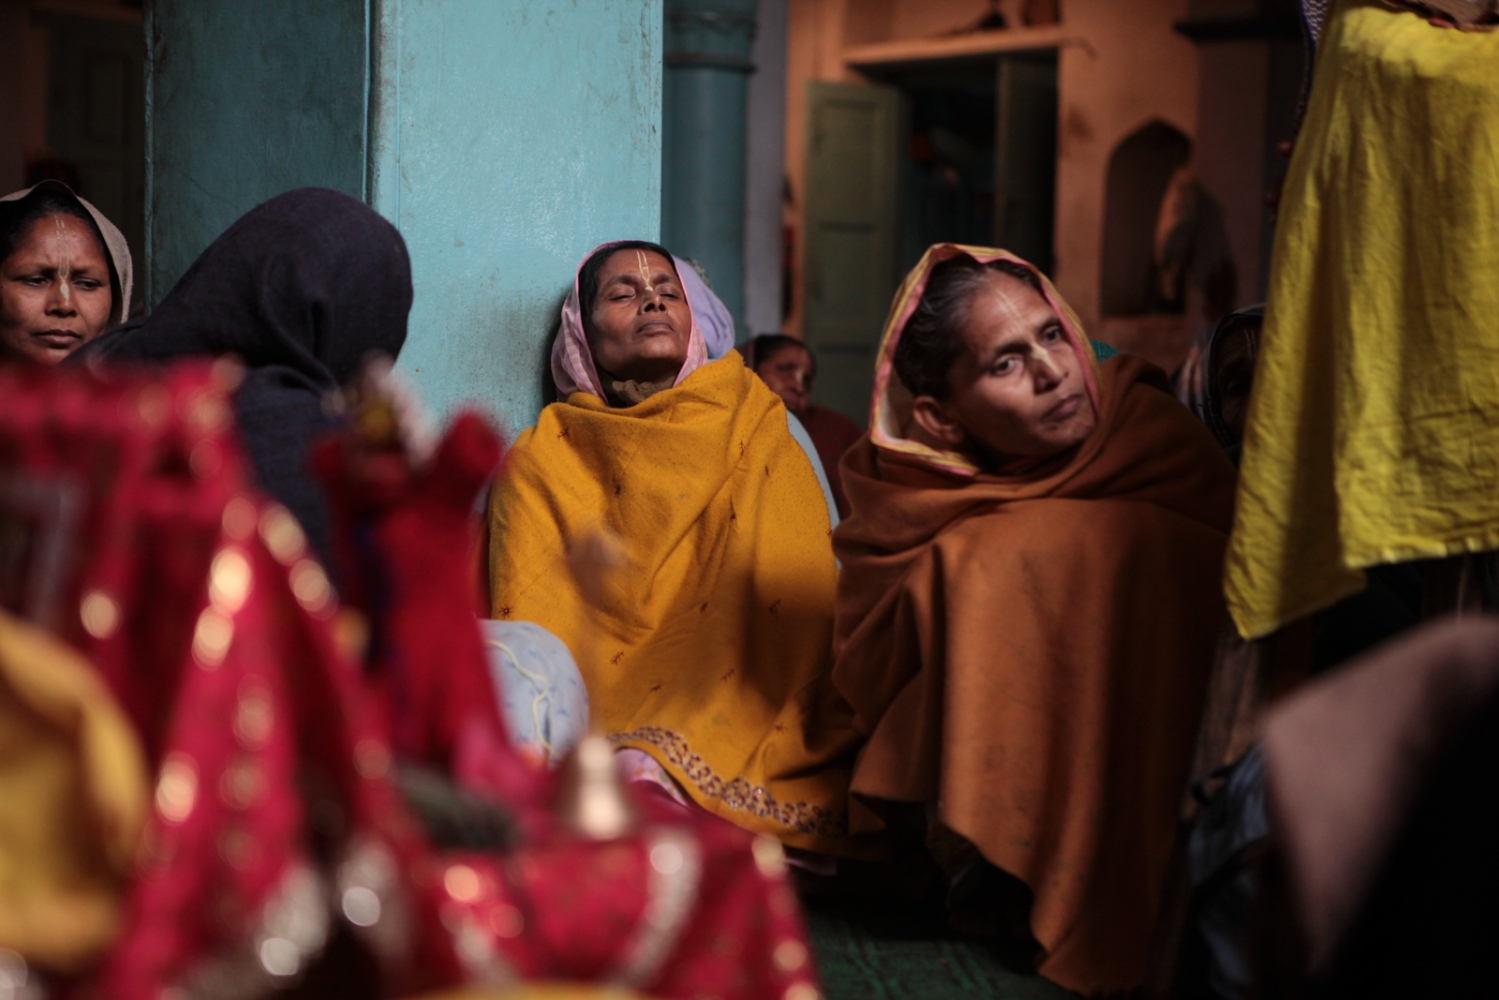 The widows live in constant fear of the temple guards who may, at free will, deprive them entrance or expel them out without pay. The daily earnings of six rupees fail to support a living, leaving the widows no recourse but to beg on the streets.